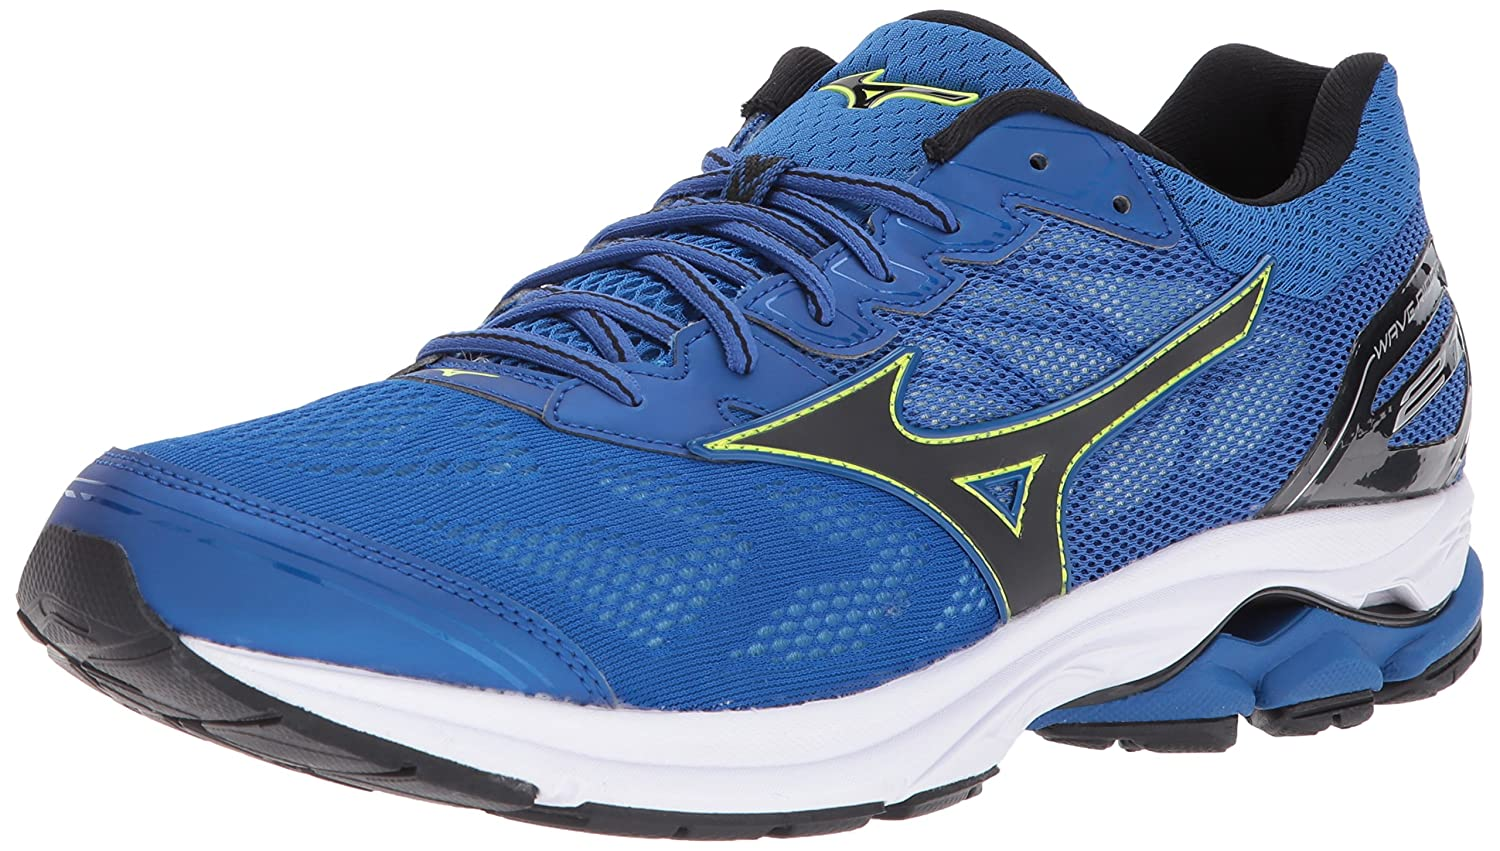 d3a4a98a05b5 Amazon.com | Mizuno Wave Rider 21 Men's Running Shoes | Running